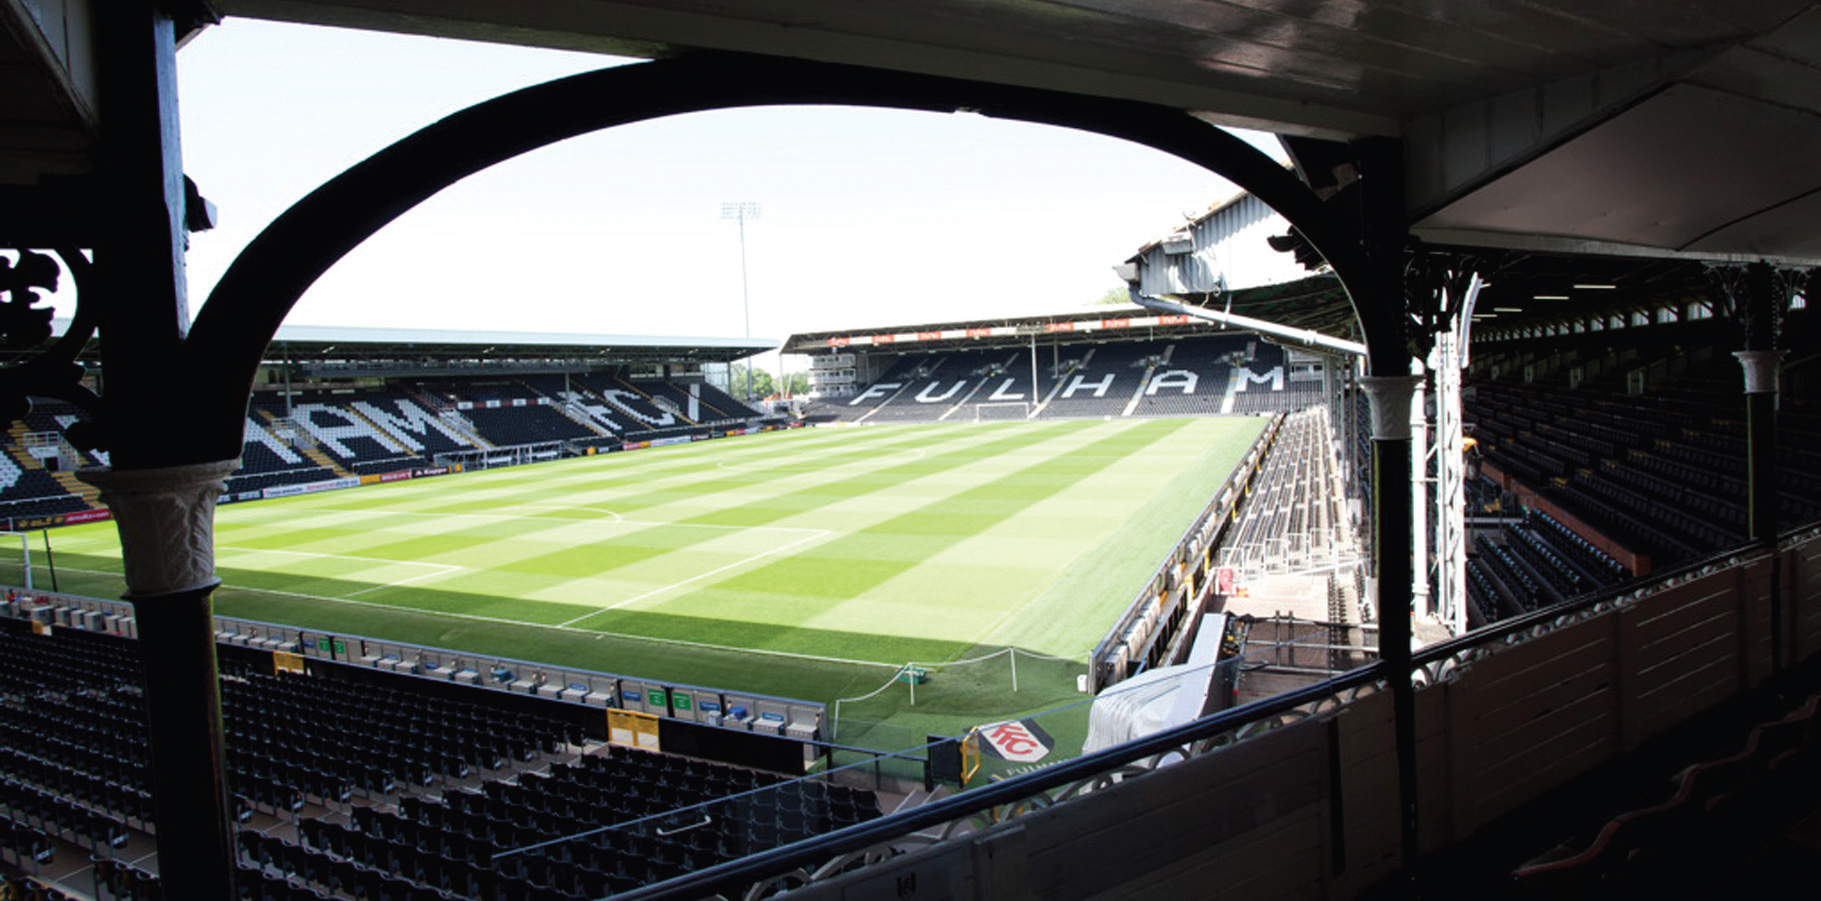 Donated by Captain Scott Parker: TWO TICKETS TO WATCH FULHAM VS MK DONS FROM THE CRAVEN COTTAGE BALCONY